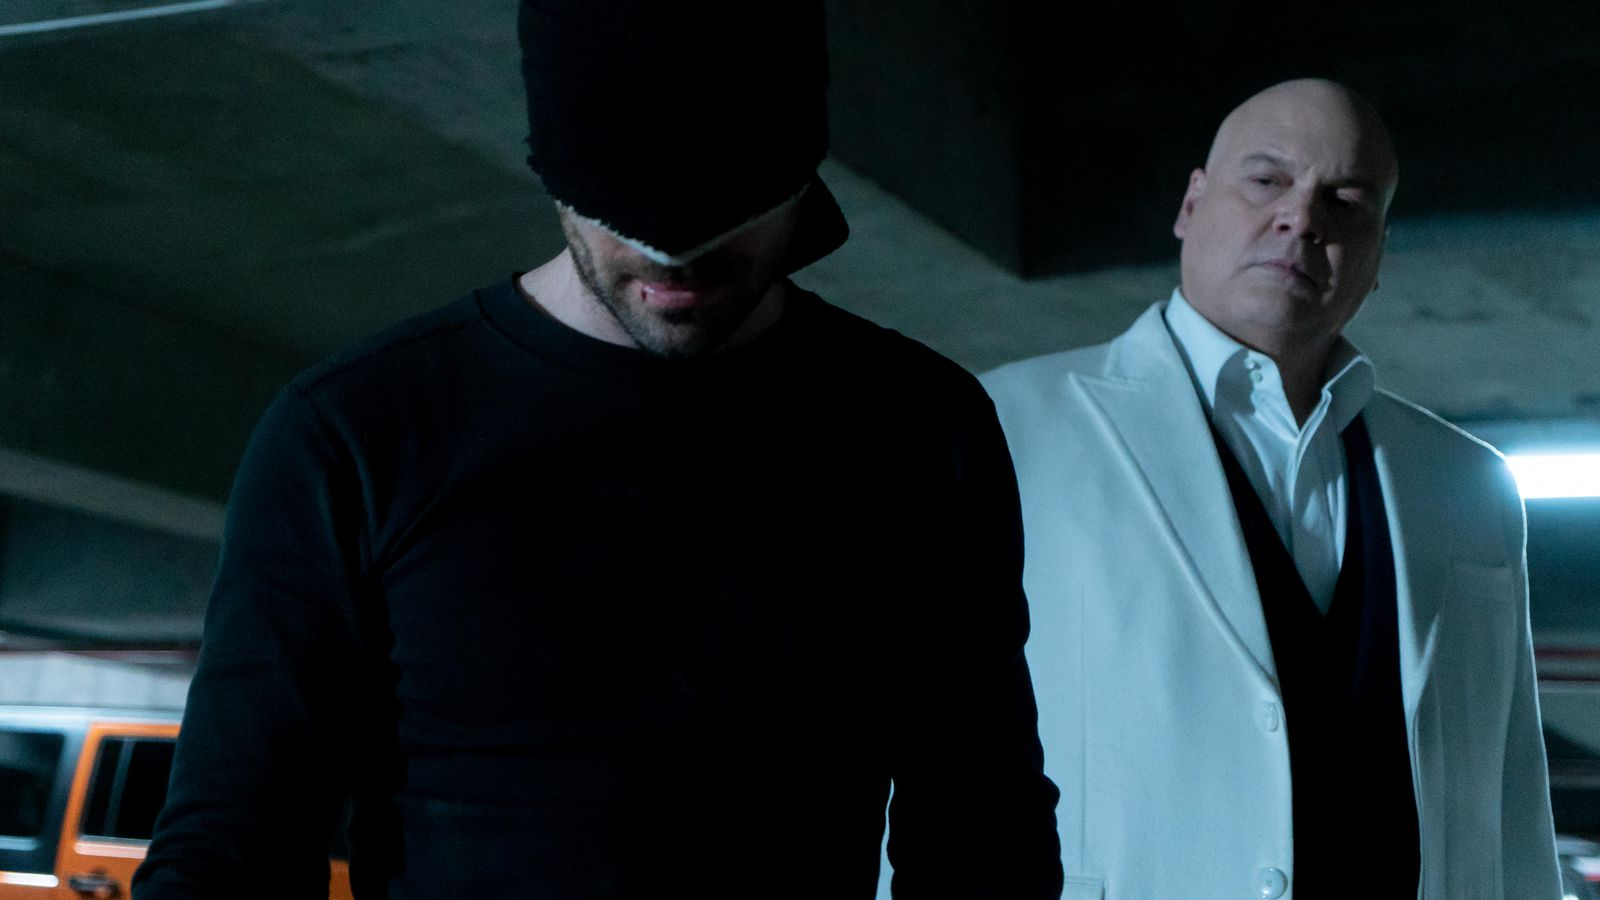 Daredevil (Charlie Cox) and Wilson Fisk aka Kingpin ( Vincent D'Onofrio) in a scene from Daredevil Season 3, available now ion Netflix